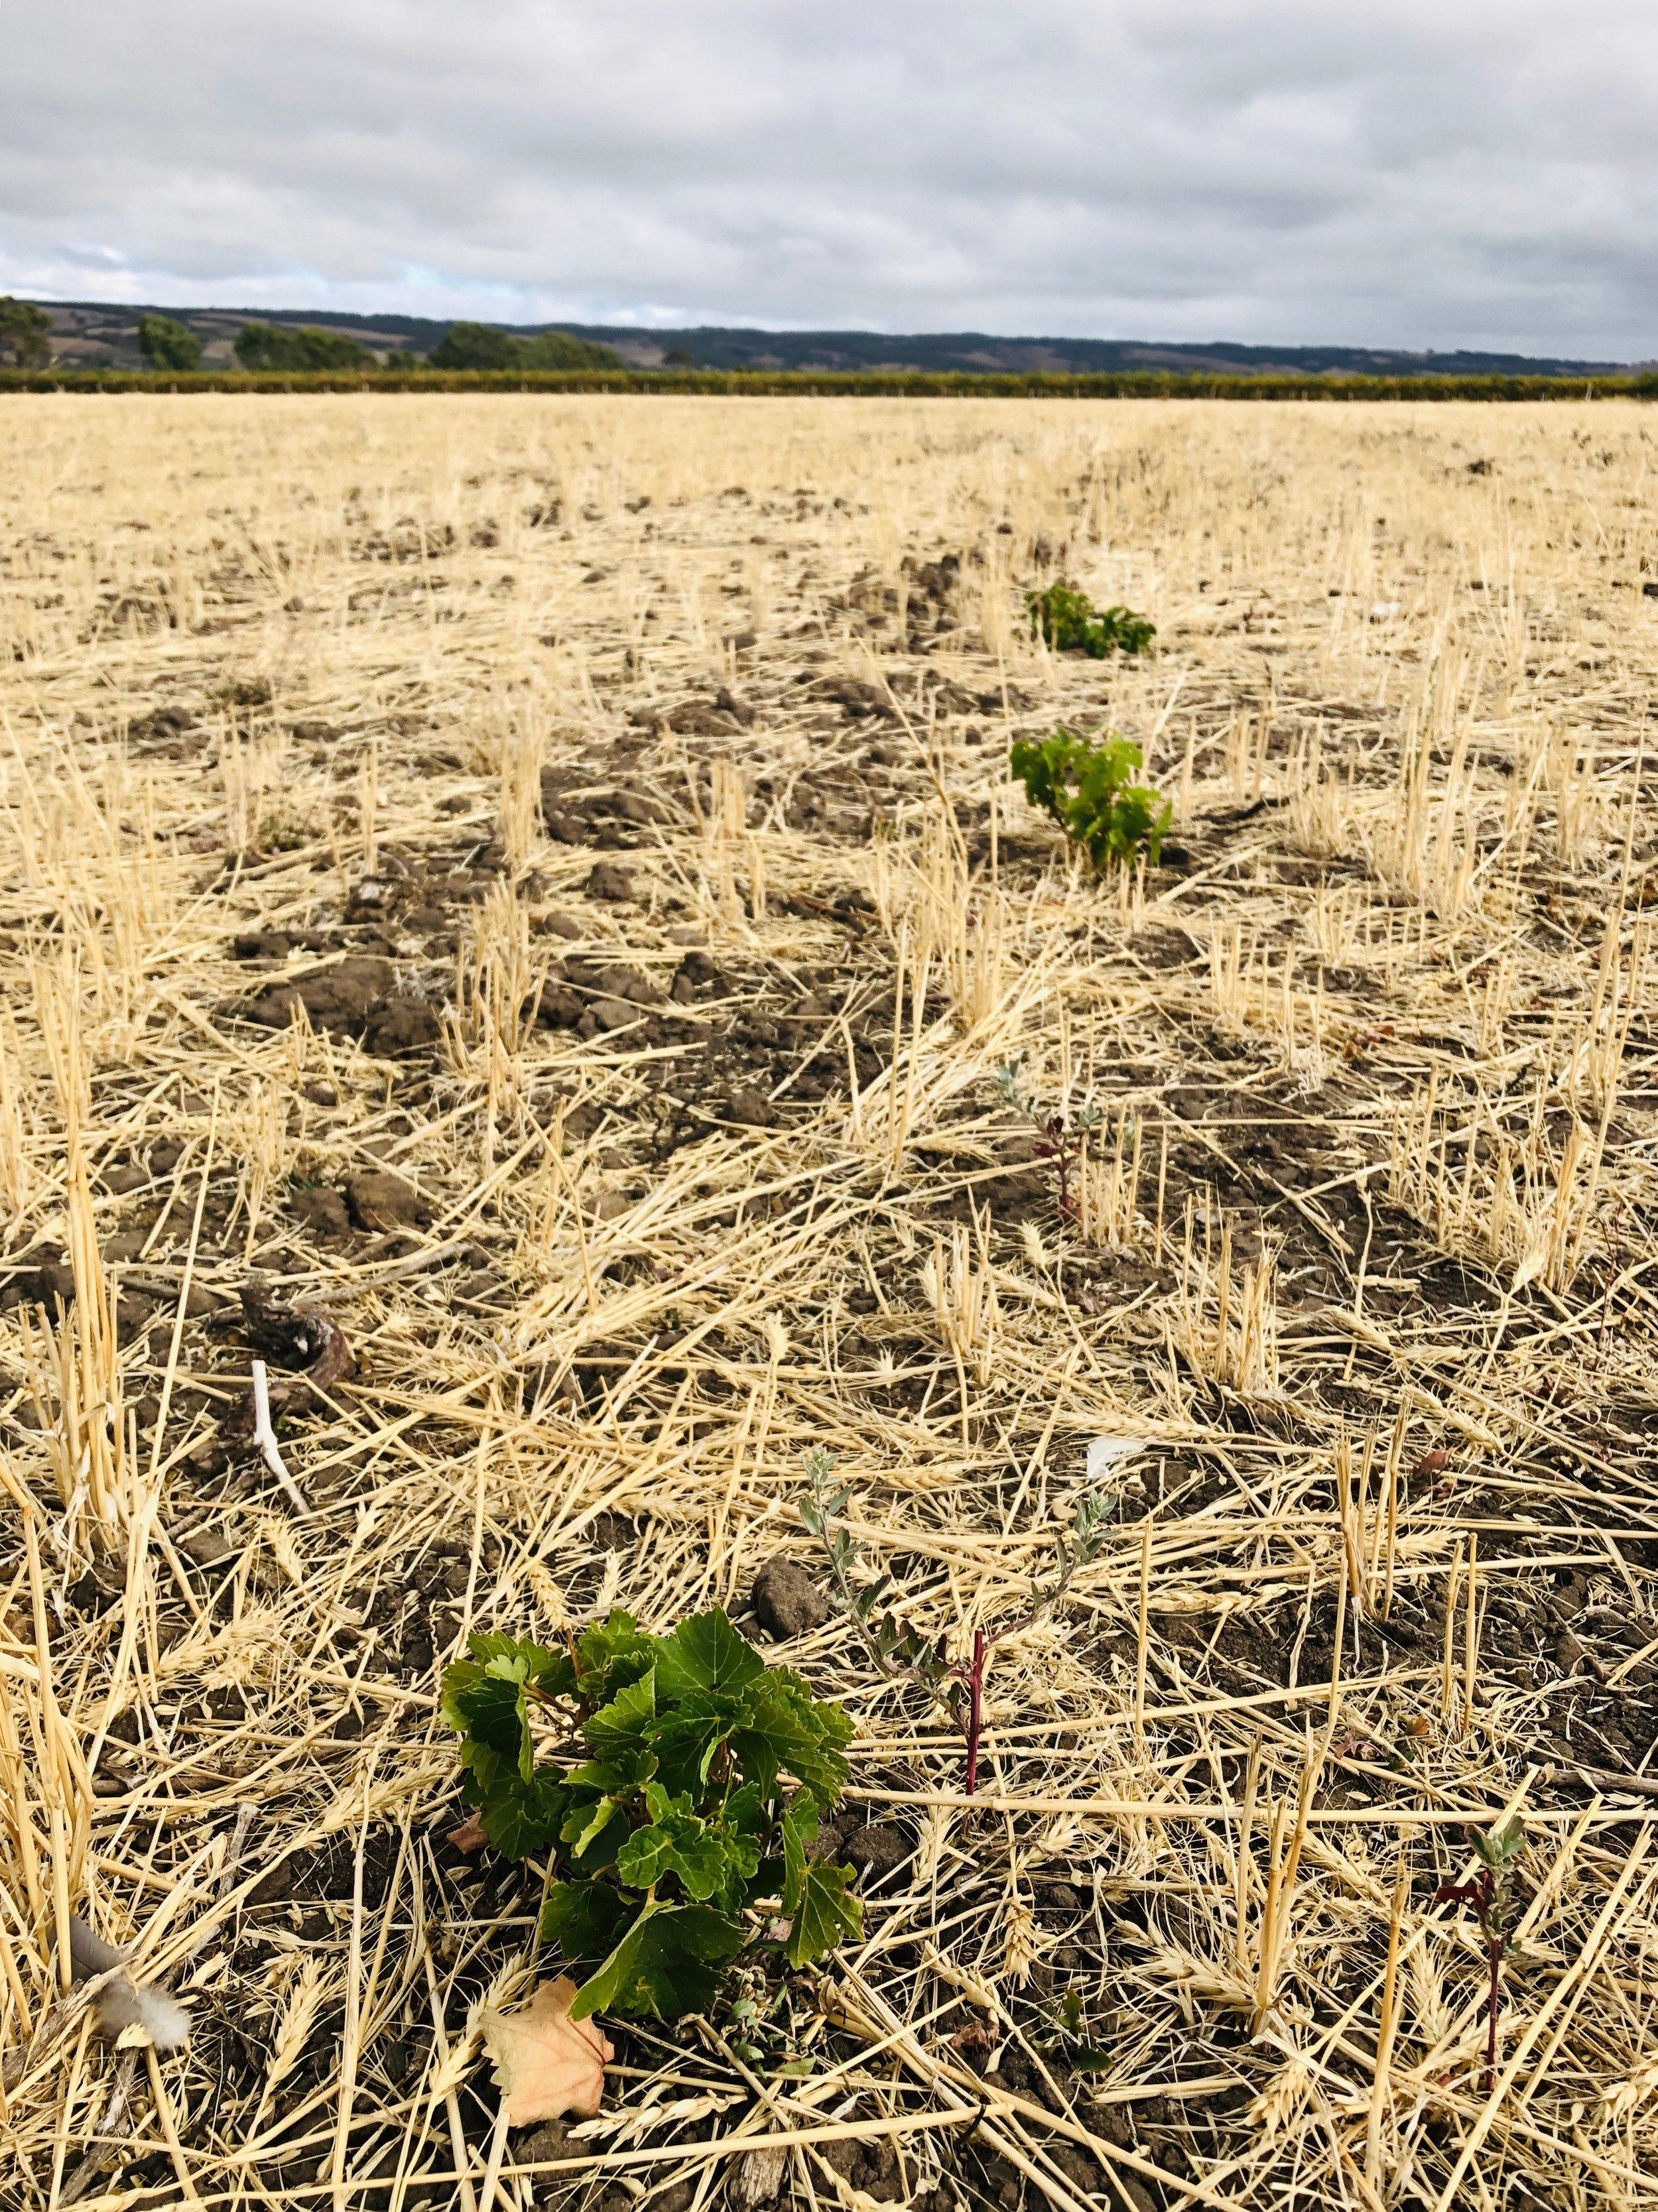 A field left fallow that has some vines that have survived from root fragments.